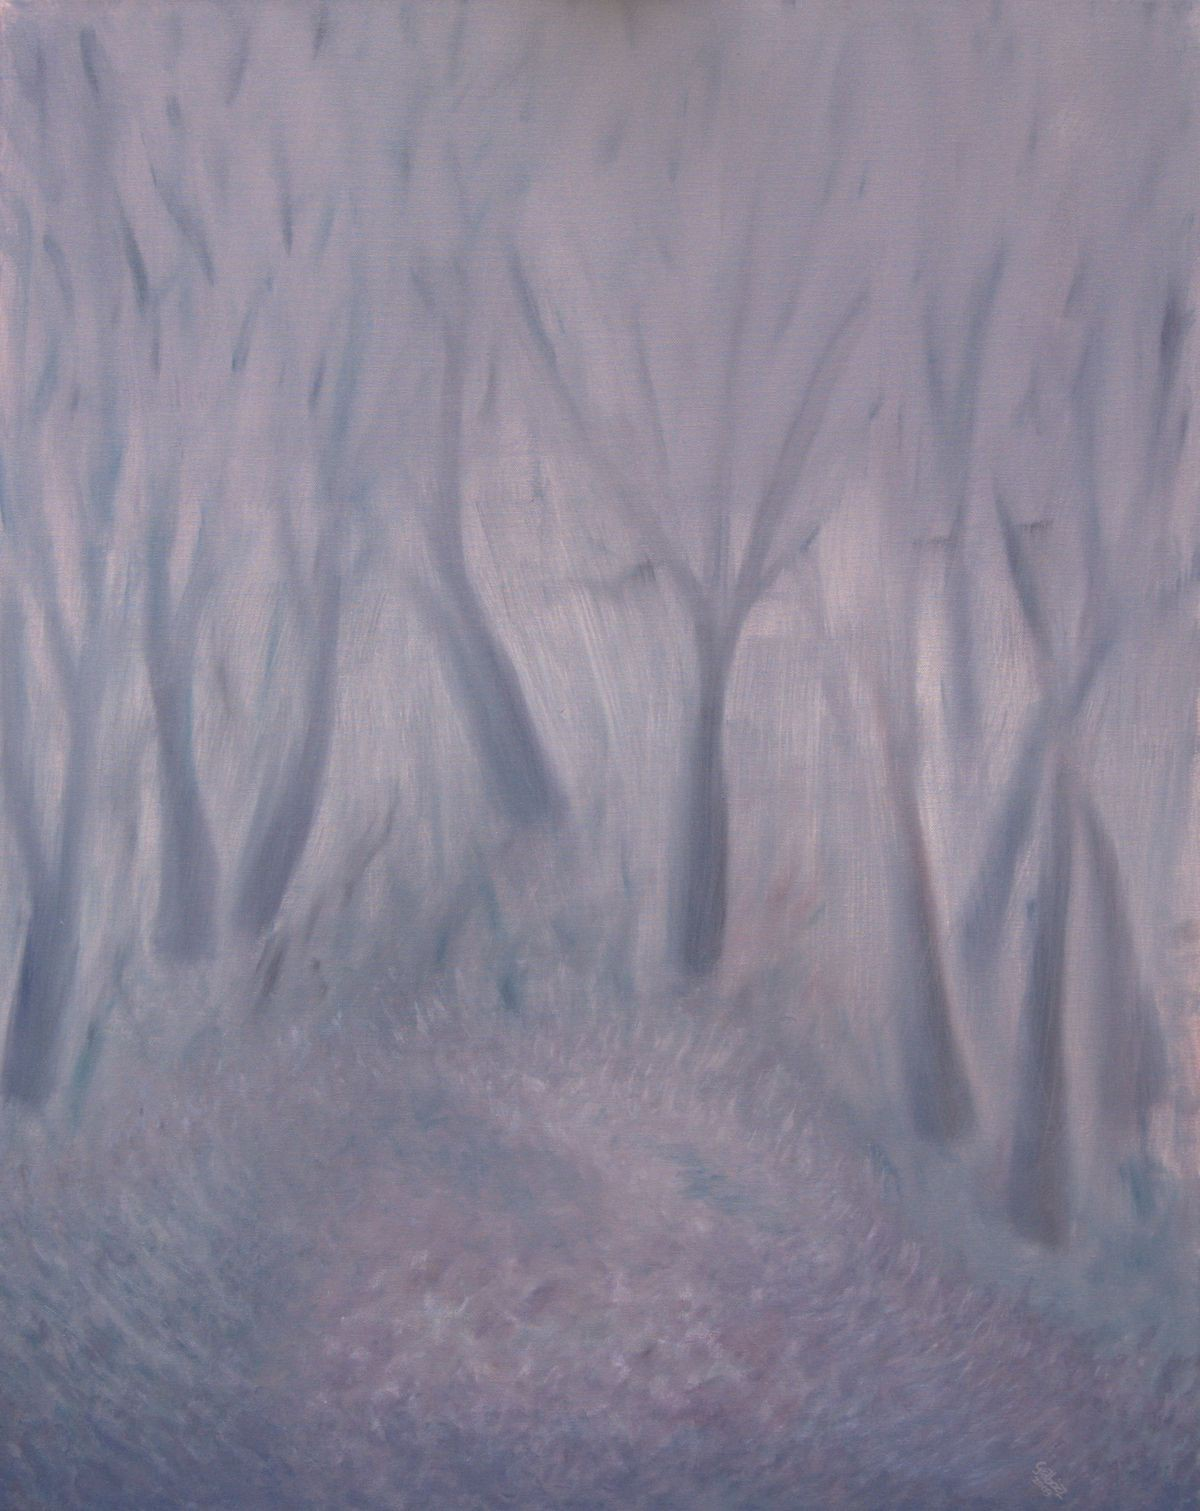 22 (oil on canvas, 80x100 cm), 2009